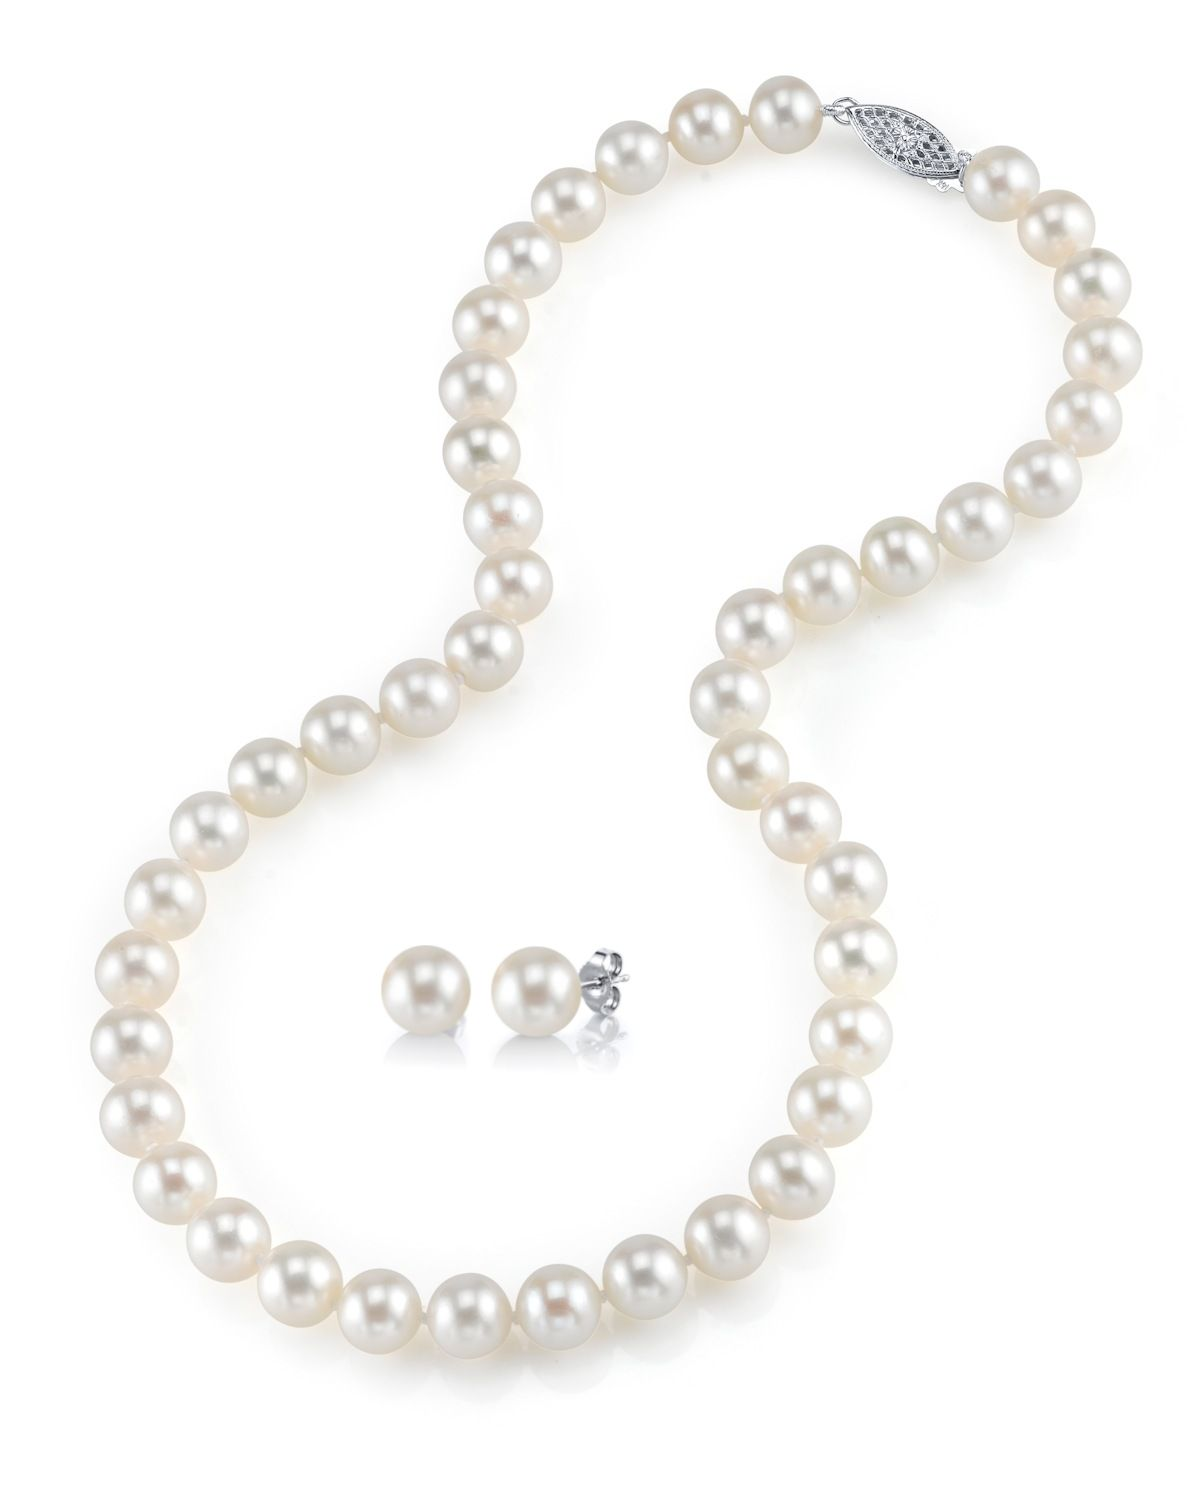 8-9mm Freshwater Pearl Necklace & Earrings